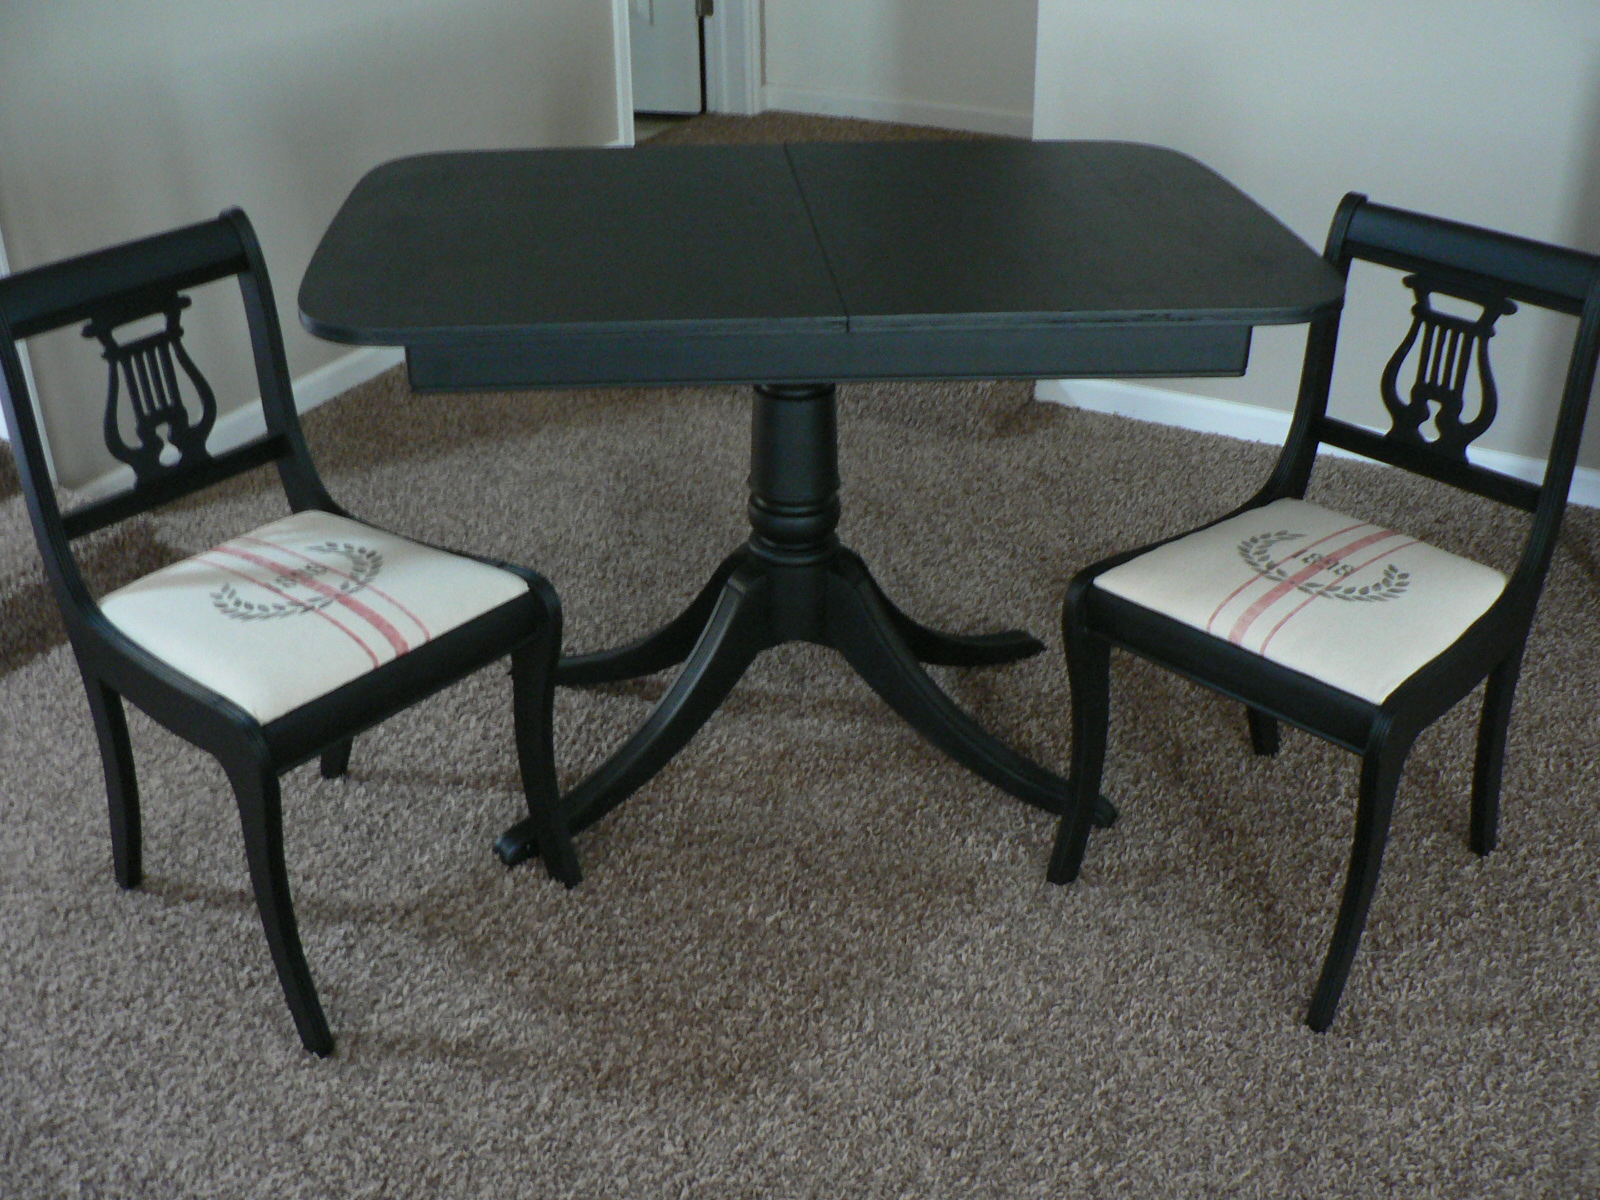 Pleasing Duncan Phyfe Table And Chairs Value Facingwalls Ncnpc Chair Design For Home Ncnpcorg